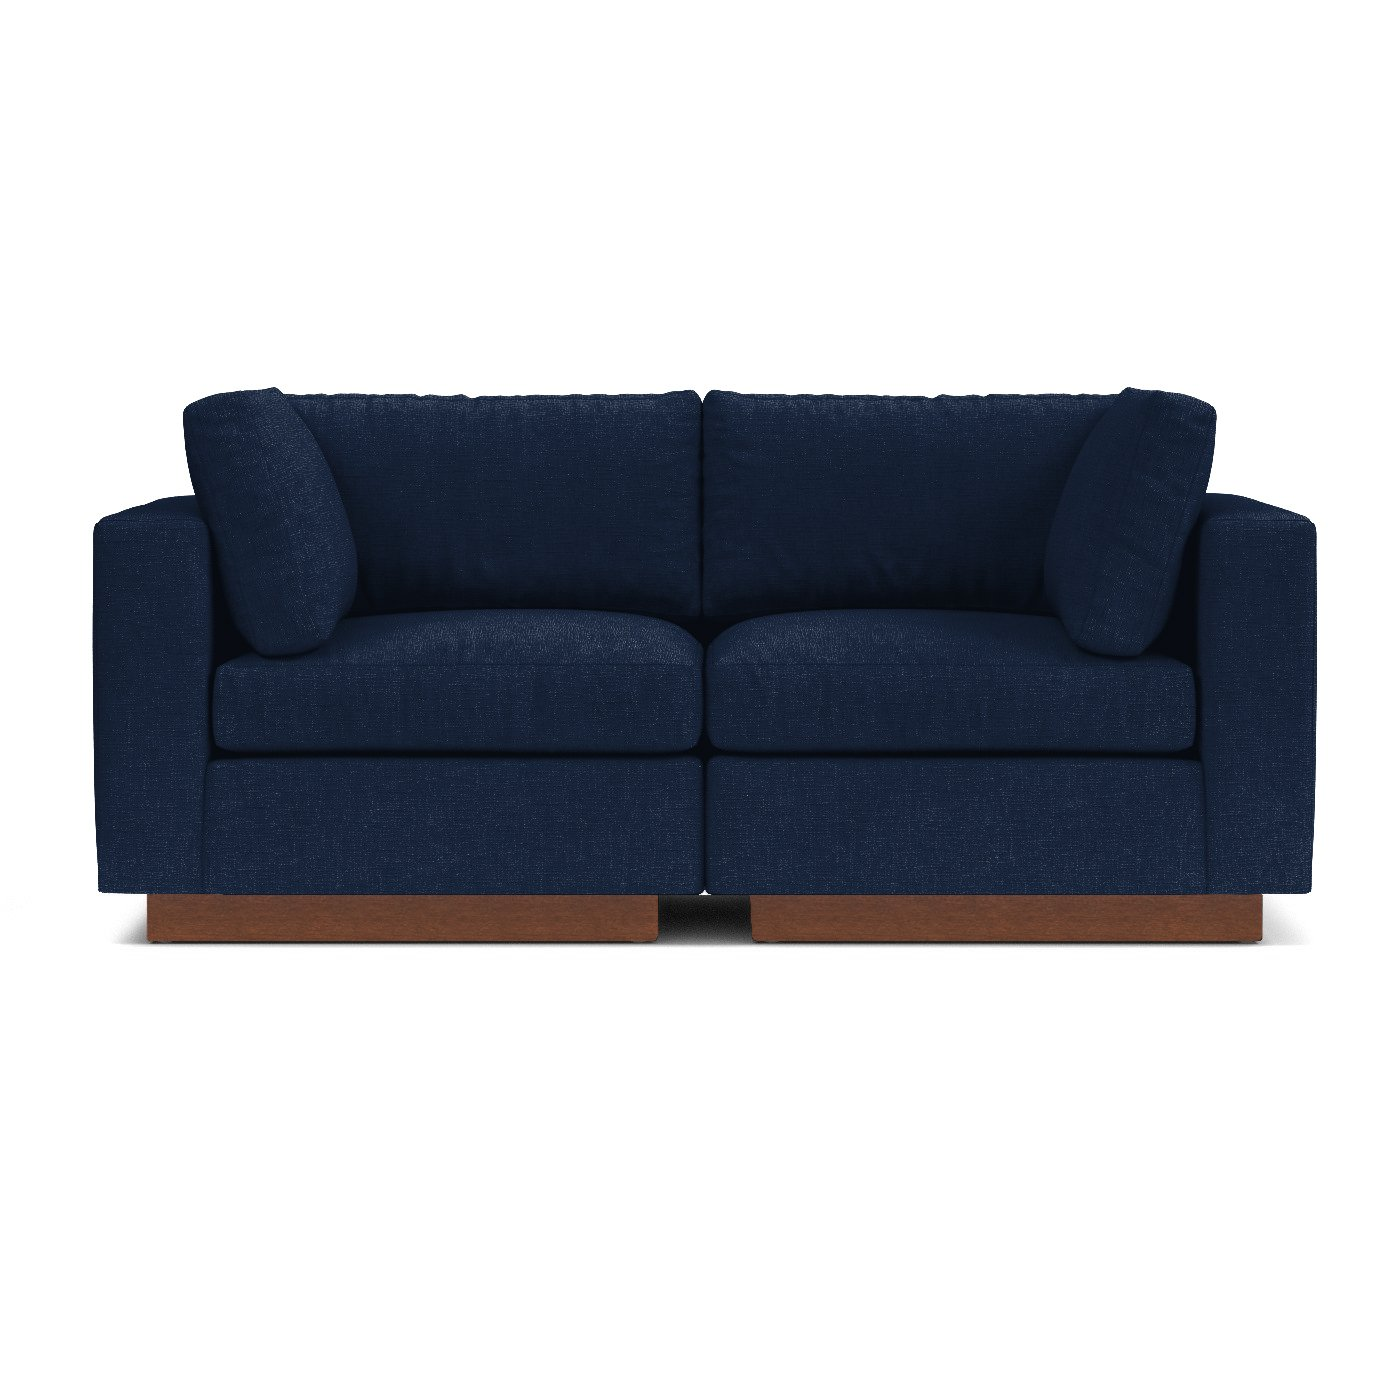 Taylor Plush 2pc Modular Sofa